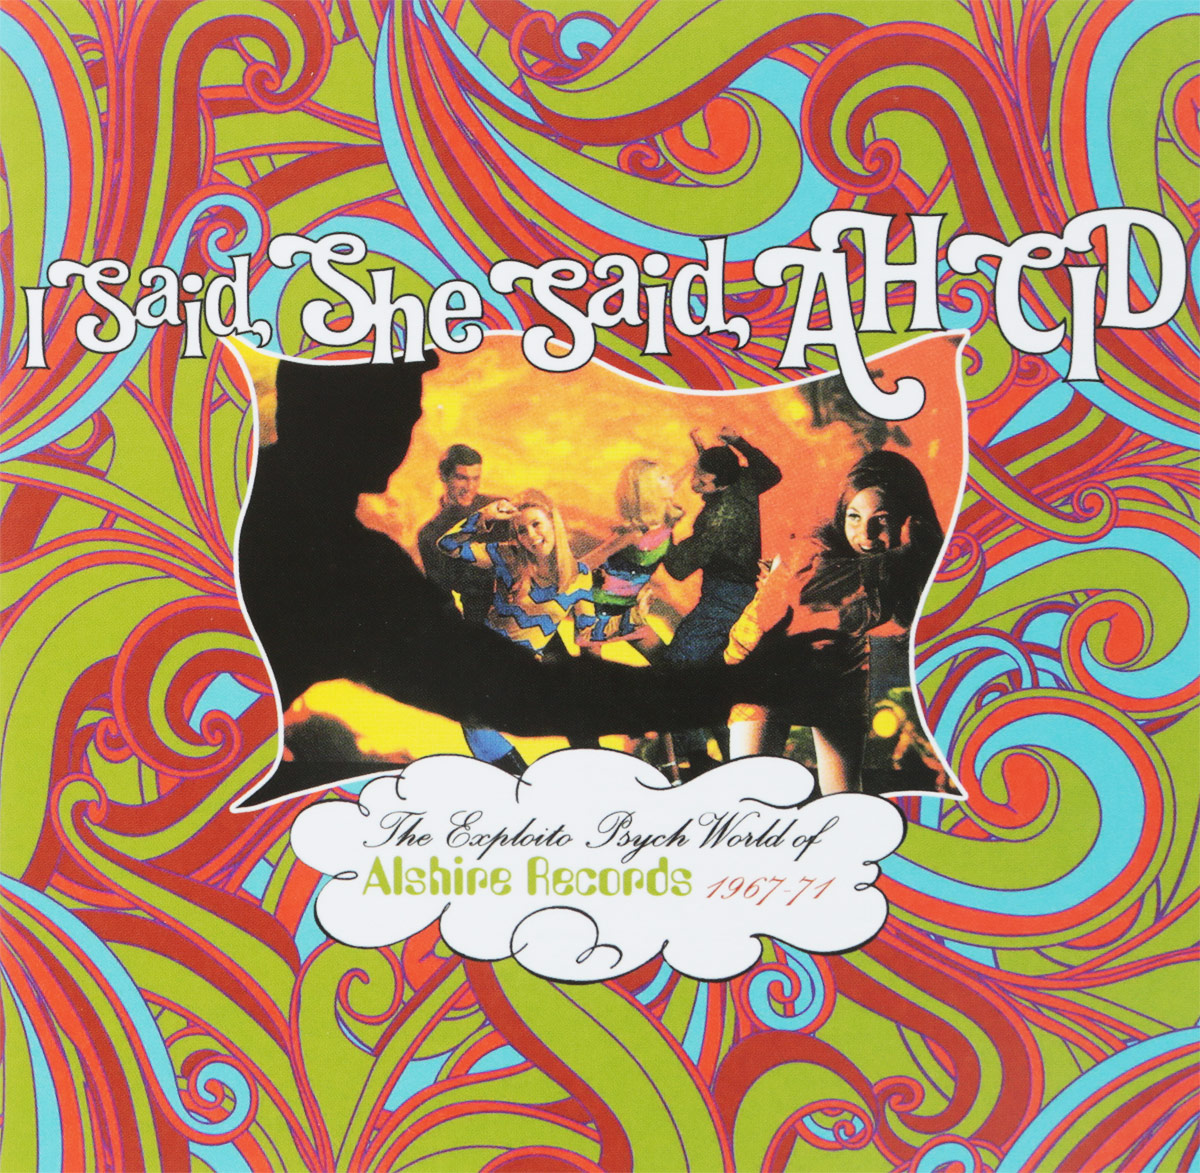 I Said, She Said, Ah Cid: The Exploito Psych World Of Alshire Records 1967-71 (3 CD) kelly e he said she said